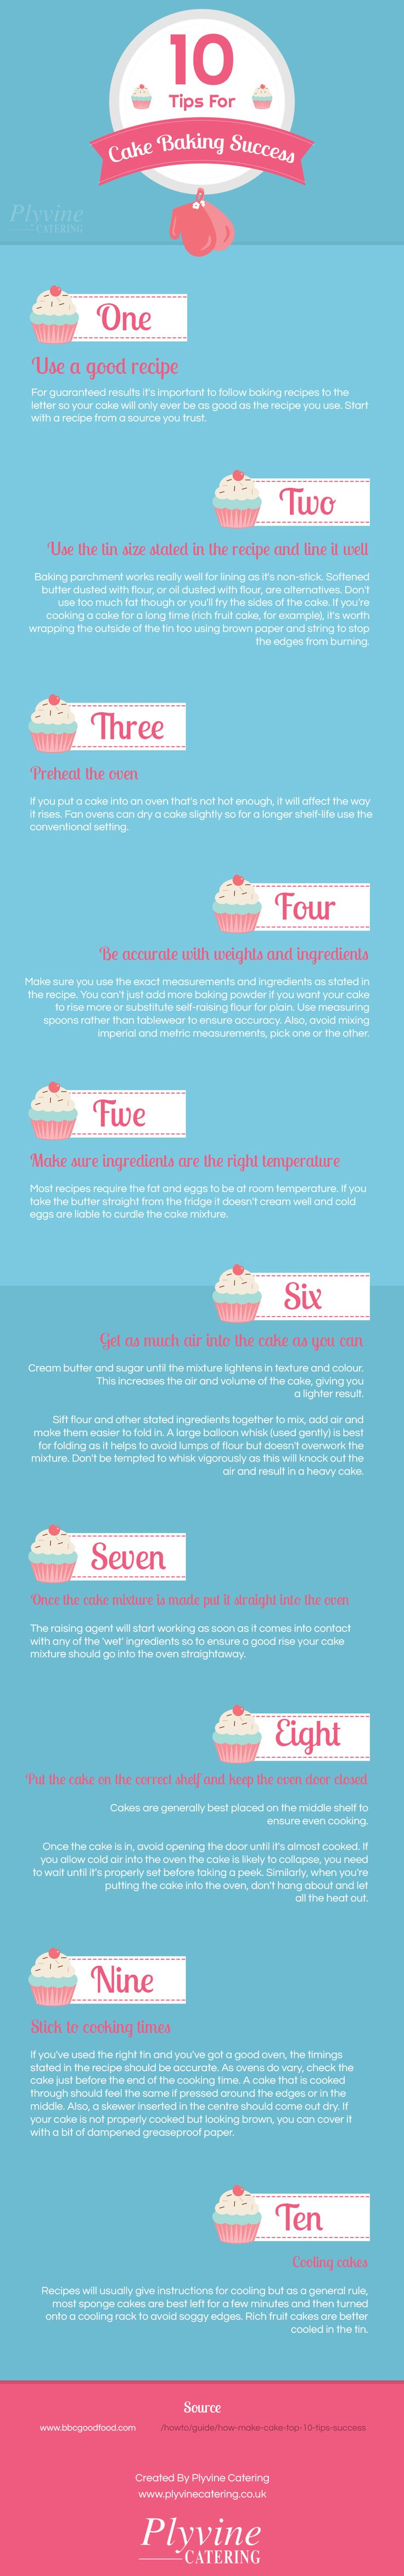 10 Tips For Cake Baking Success Infographic Latest